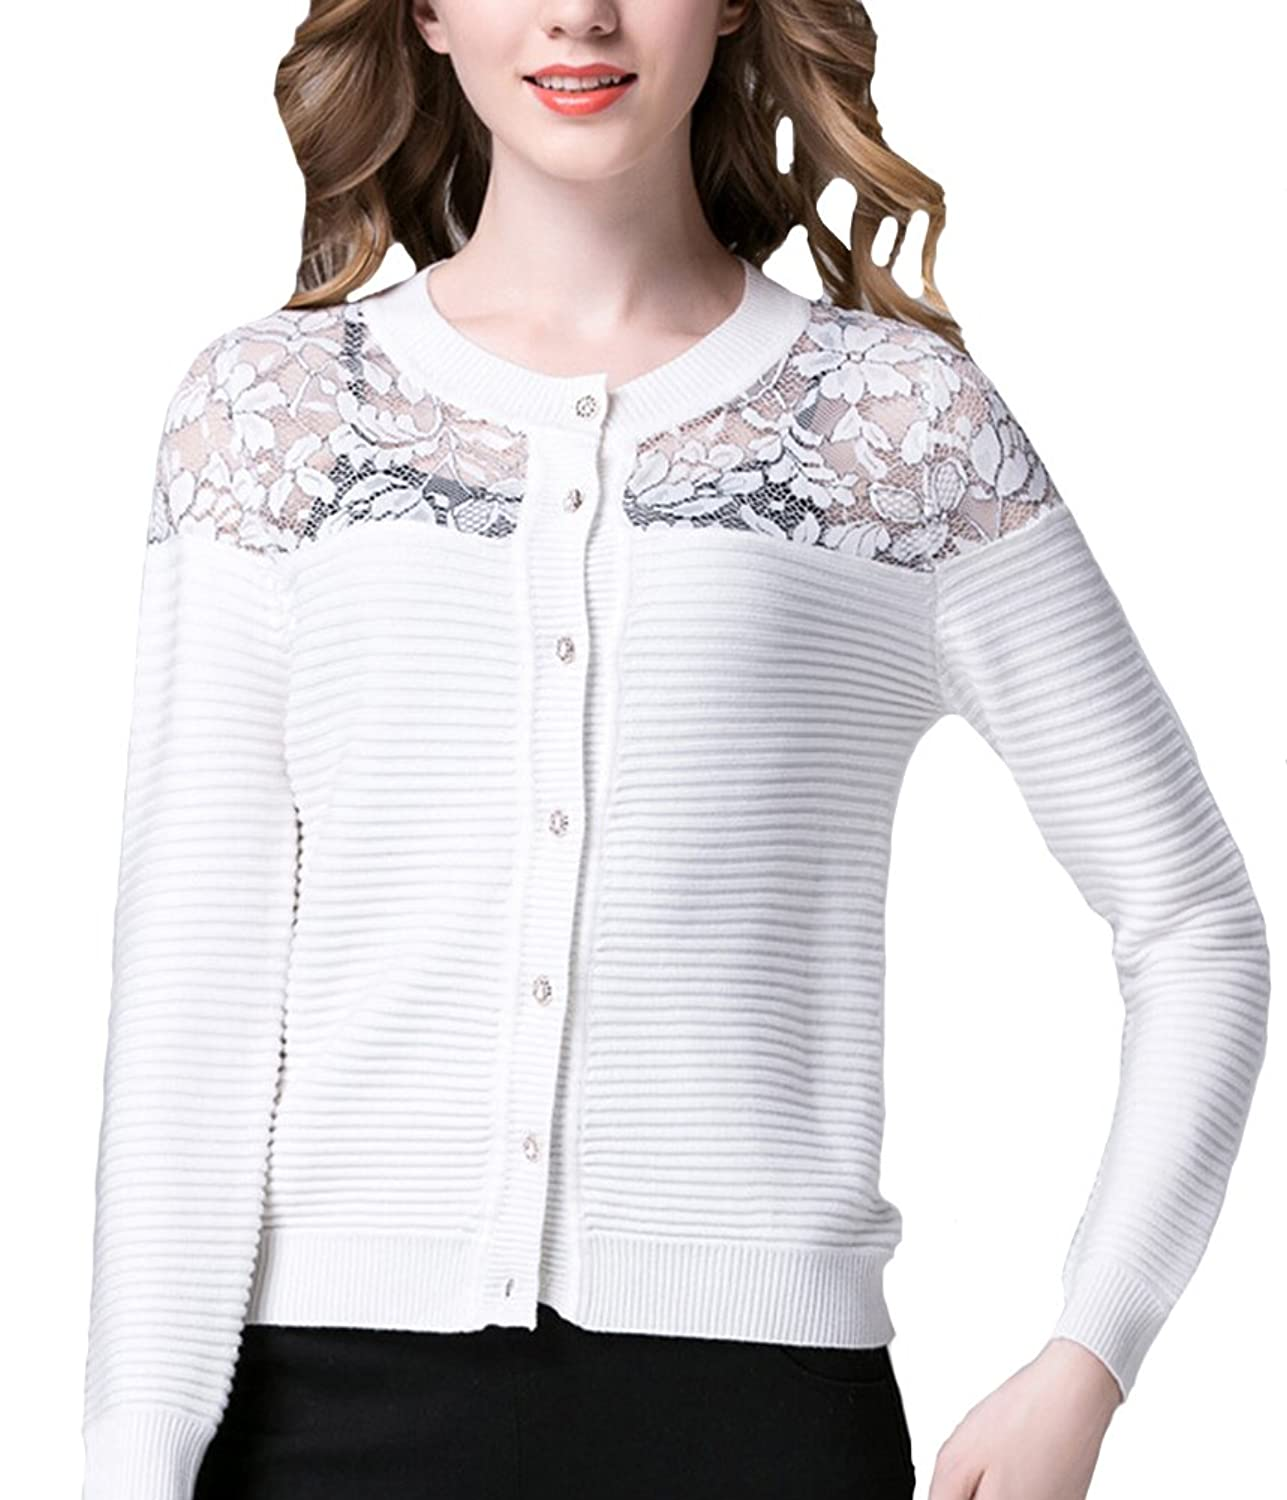 Broadmix Women's Youth Lace Flower Print Knitted Cardigan